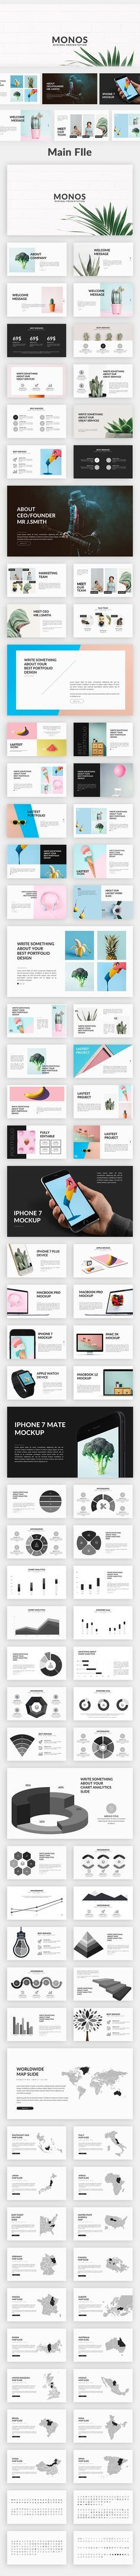 Light keynote presentation template presentation templates monos minimal powerpoint template powerpoint templates presentation templates download here https toneelgroepblik Image collections